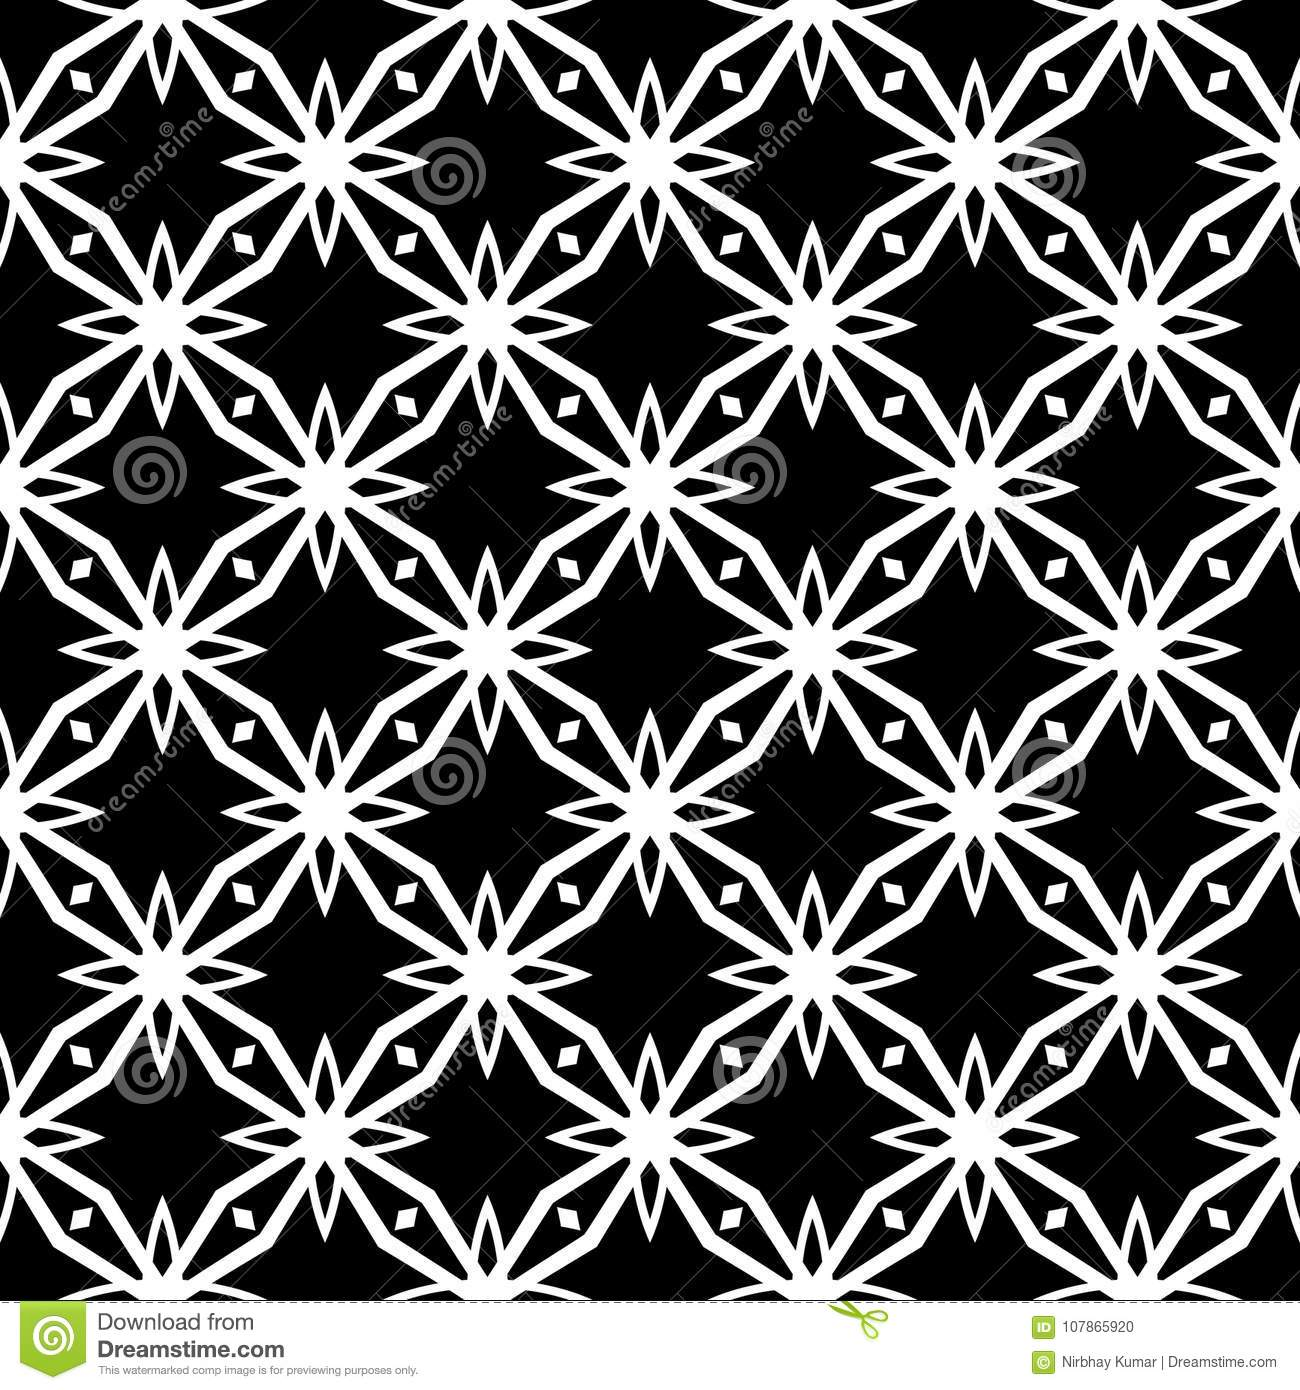 Simple Wallpaper Home Screen Black And White - vector-black-white-seamless-pattern-design-pattern-website-background-wallpaper-screen-sever-book-cover-screen-107865920  Pic_757279.jpg